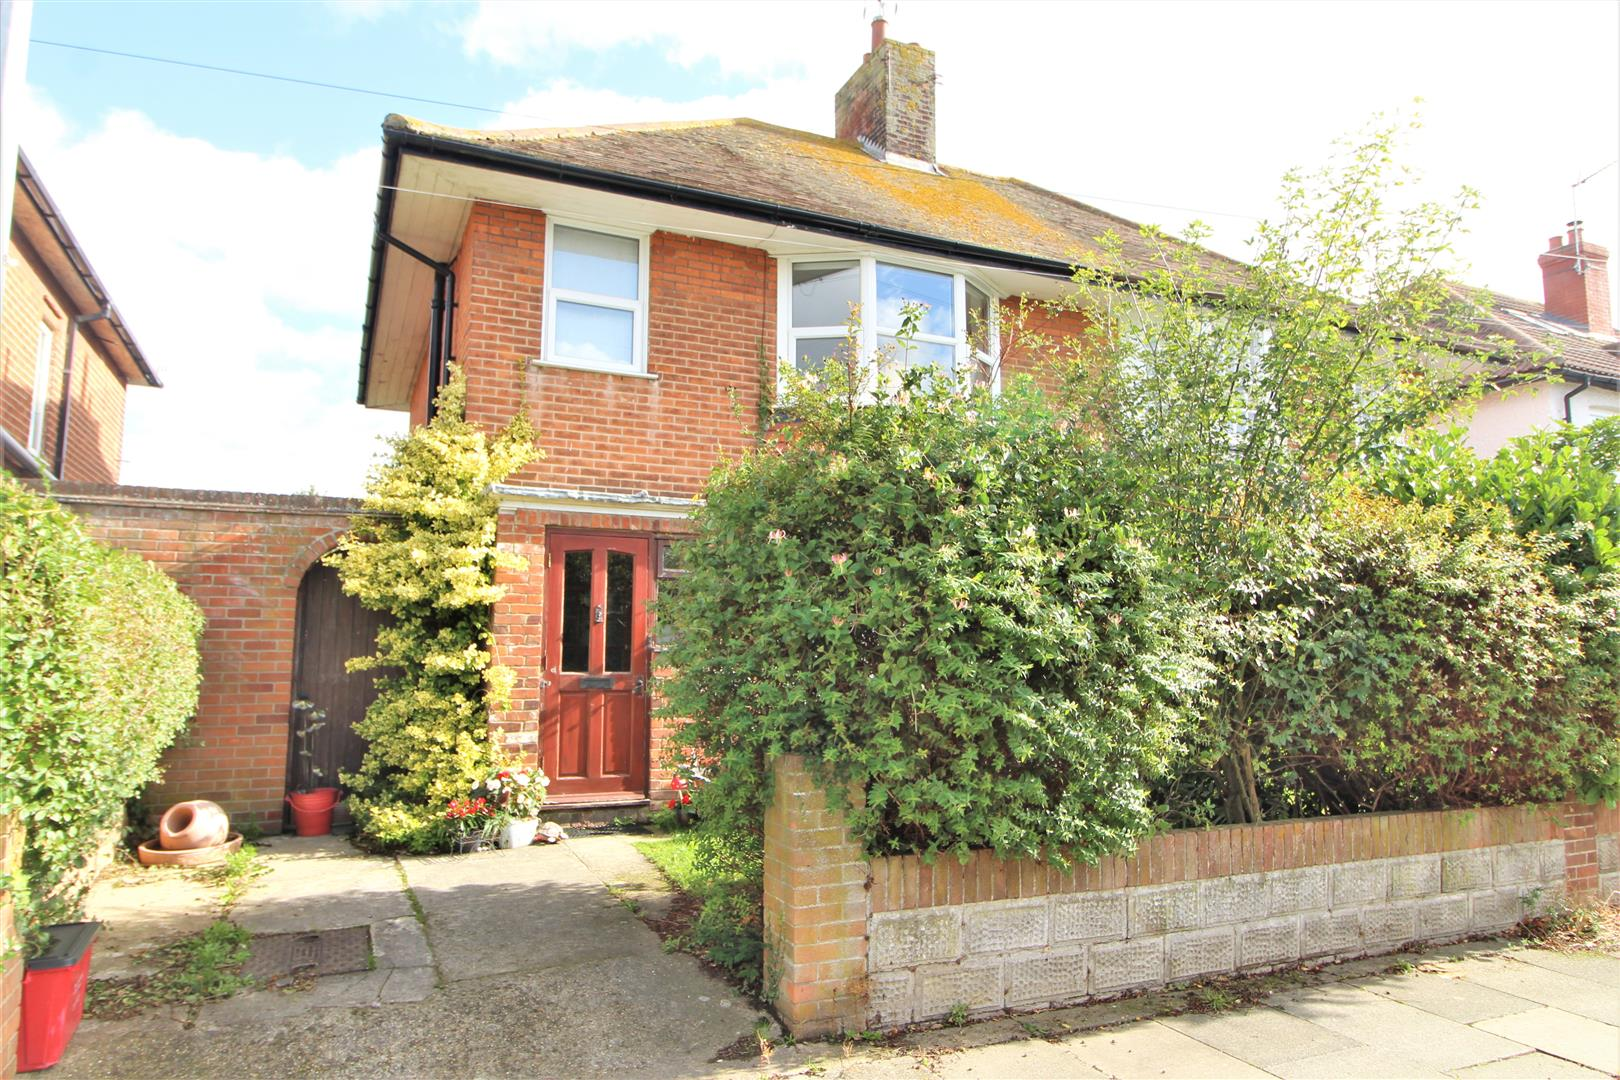 St. Marys Road, Frinton-On-Sea, Essex, CO13 9HT